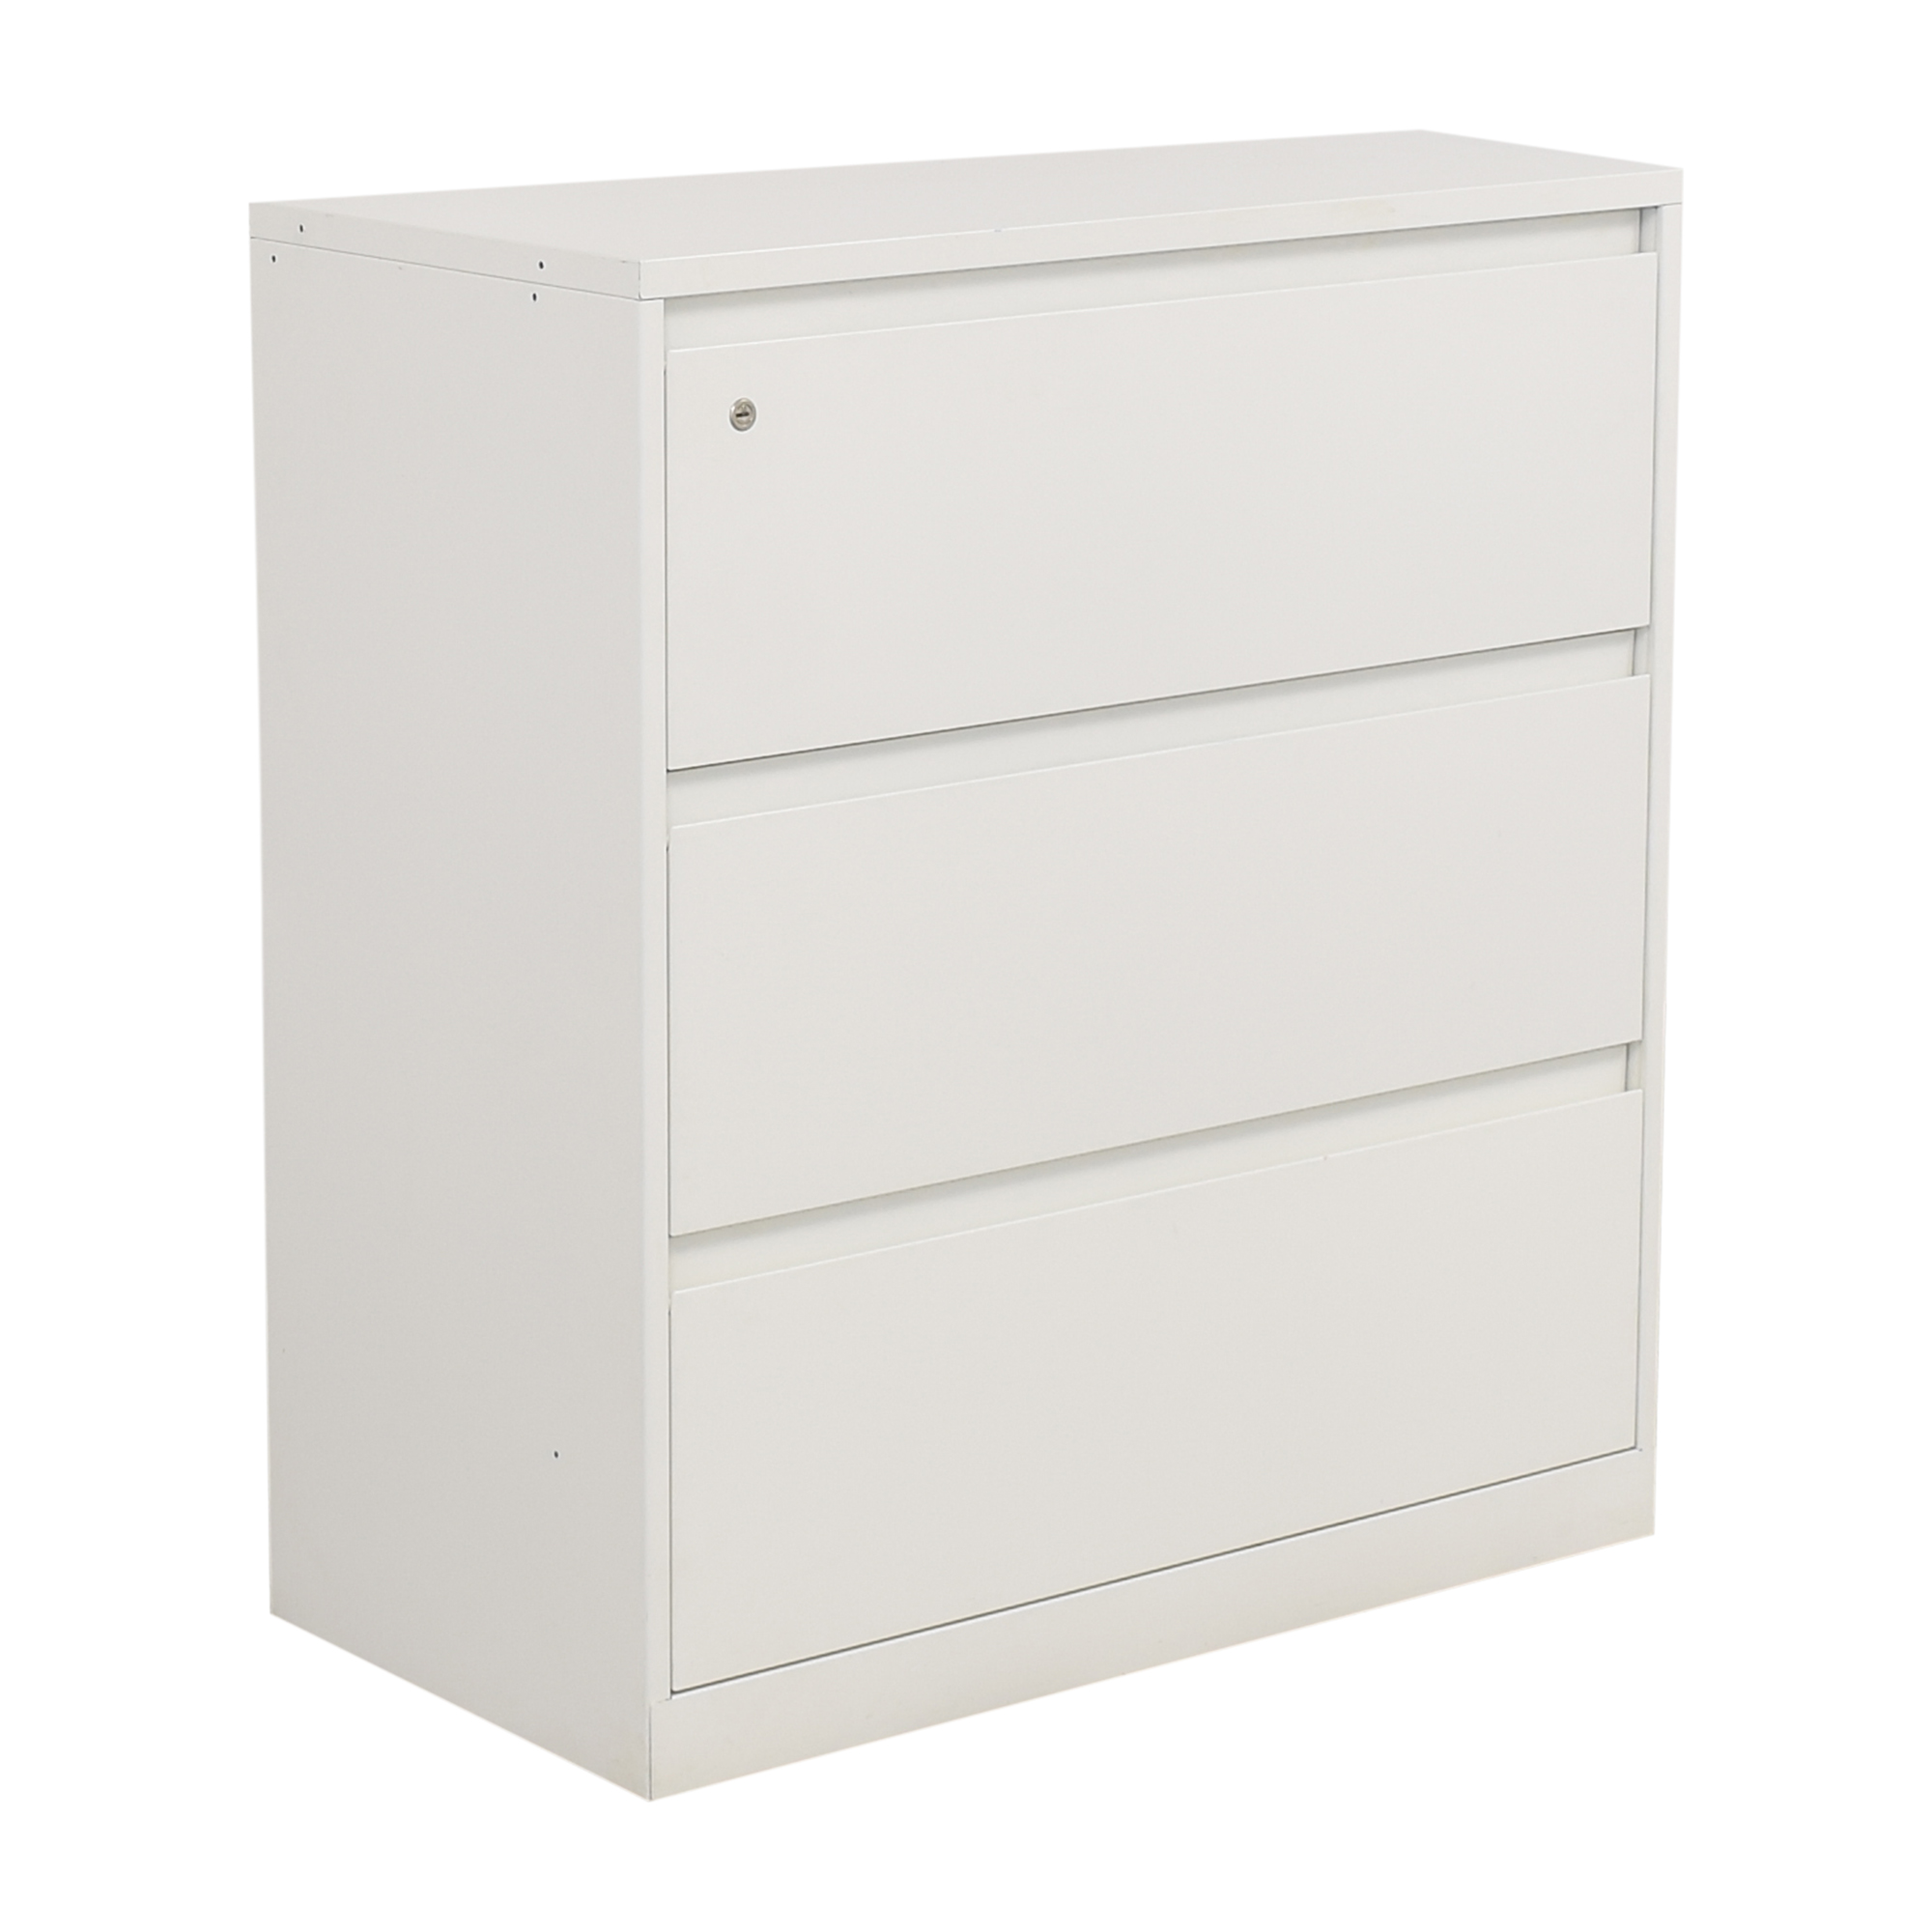 Steelcase Steelcase Three Drawer Lateral Filing Cabinet nj